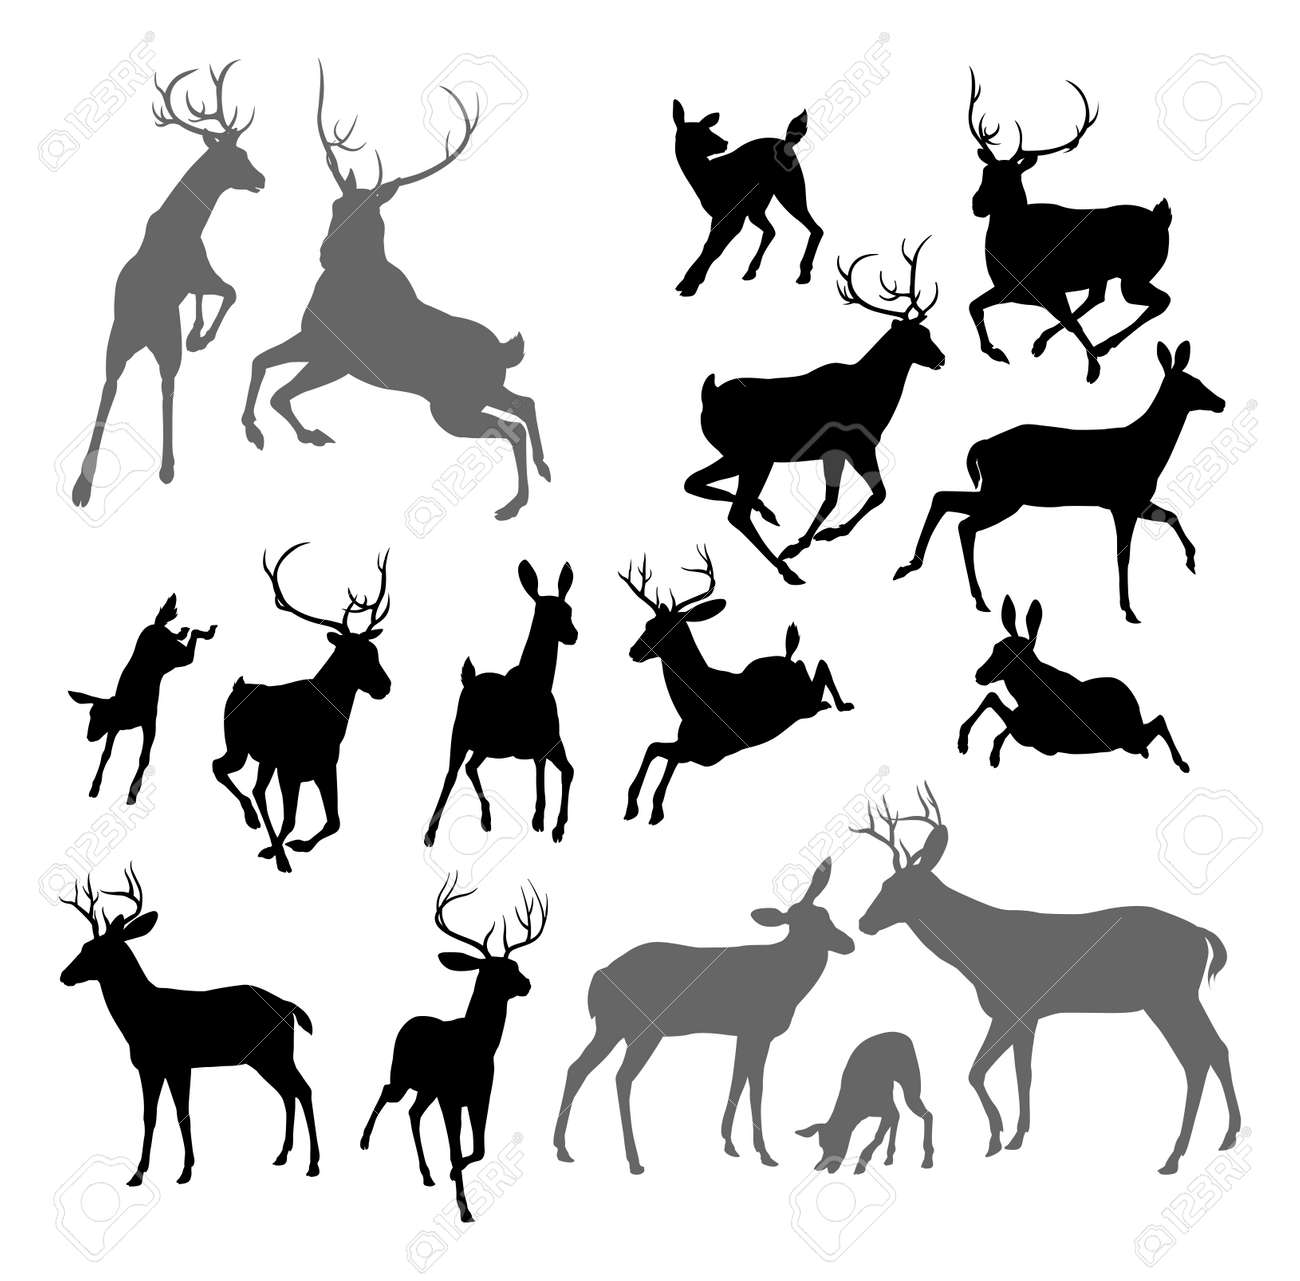 15,402 Deer Silhouette Cliparts, Stock Vector And Royalty Free ...